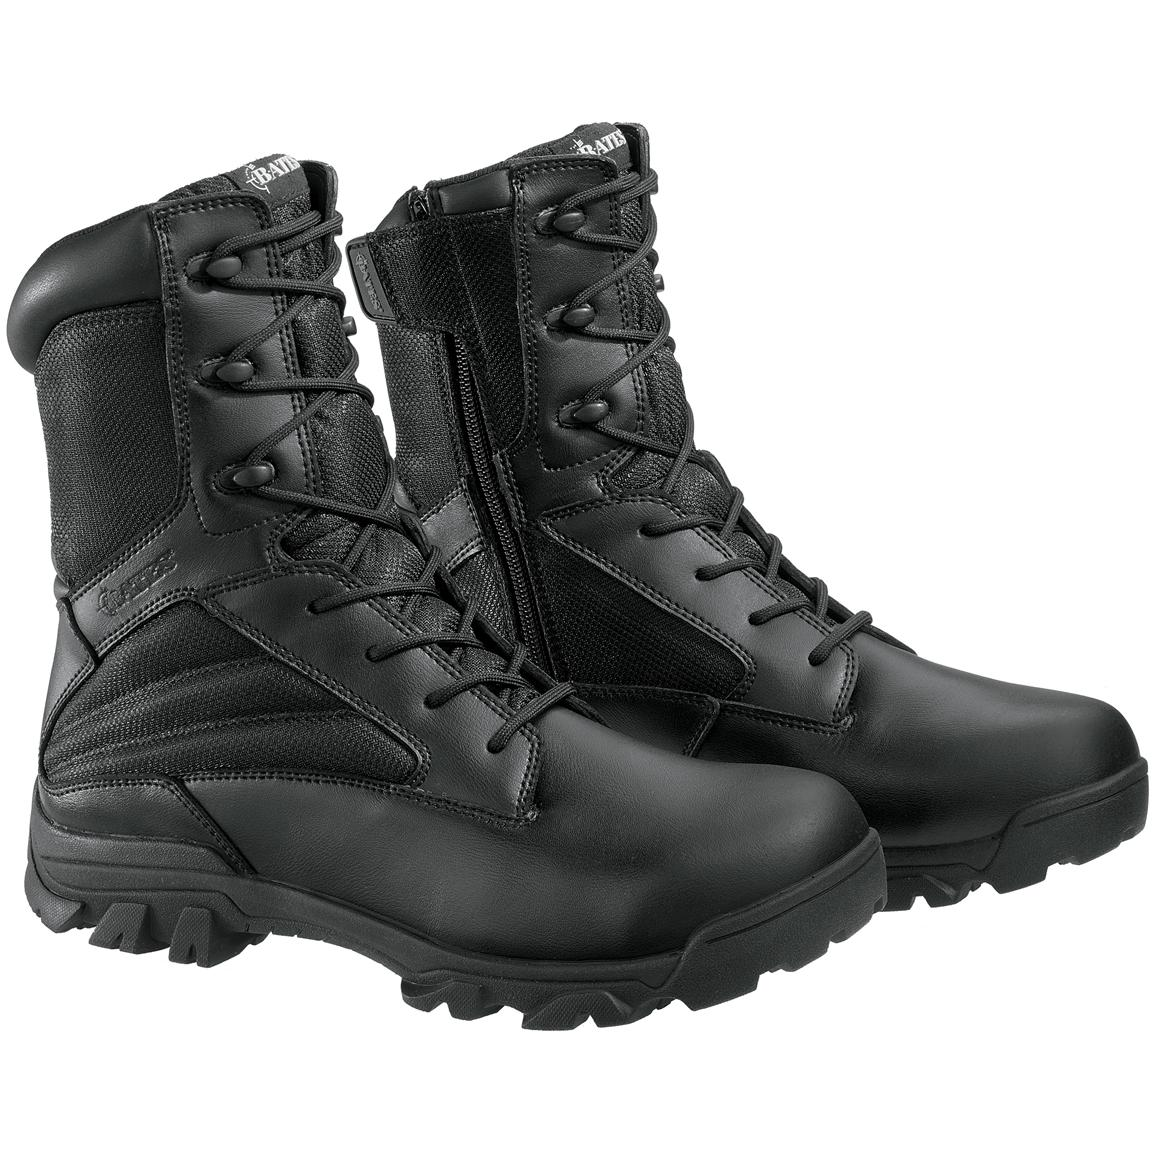 Bates Boots Sale! Shop circulatordk.cf's huge selection of Bates Boots and save big! Over 30 styles available. FREE Shipping & Exchanges, and a % price guarantee!